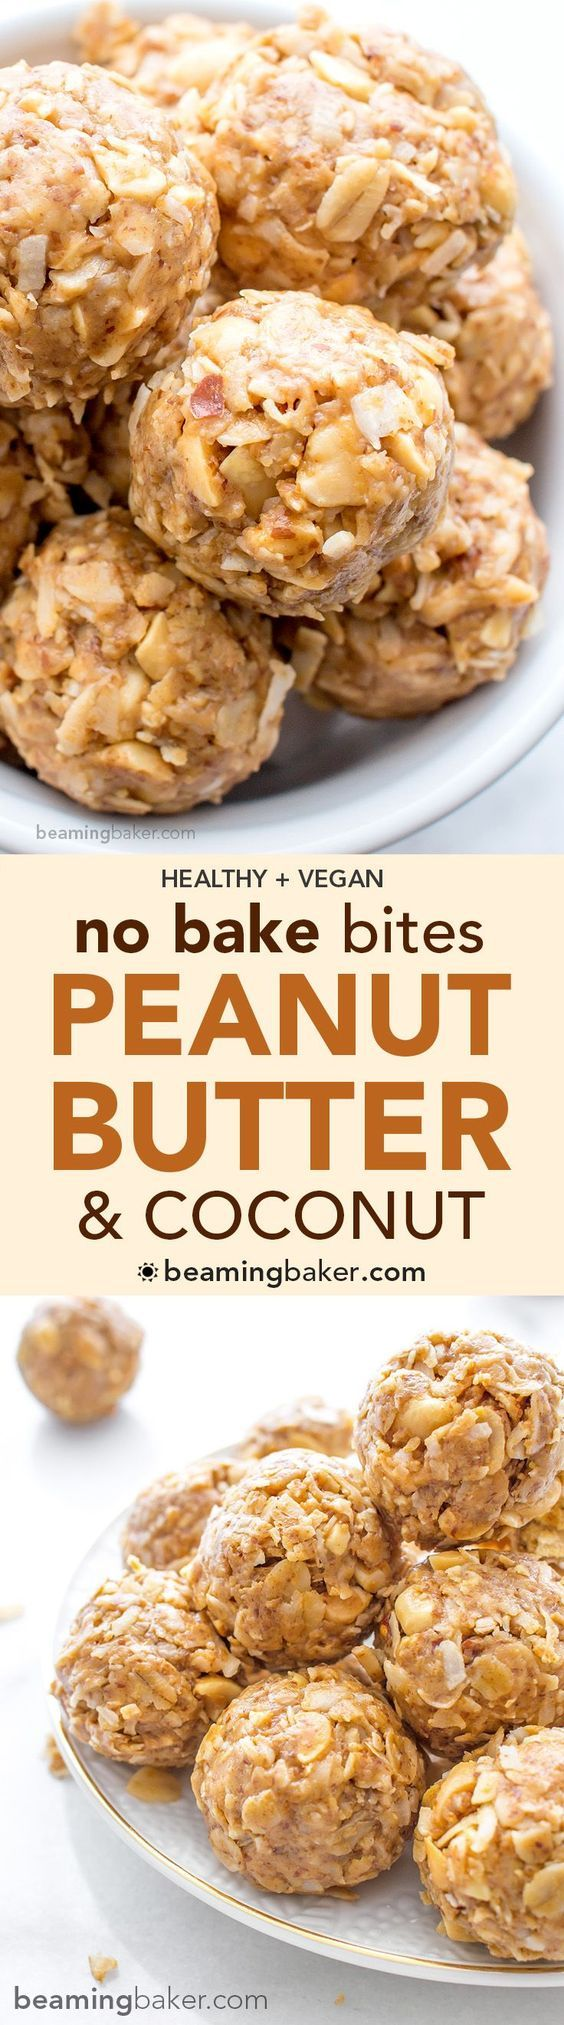 No Bake Peanut Butter Coconut Bites: delicious, easy to make, energy-boosting and super-filling. Made of just 6 simple ingredients, vegan, gluten free and healthy. ☀️︎ BEAMINGBAKER.COM #vegan #glutenfree